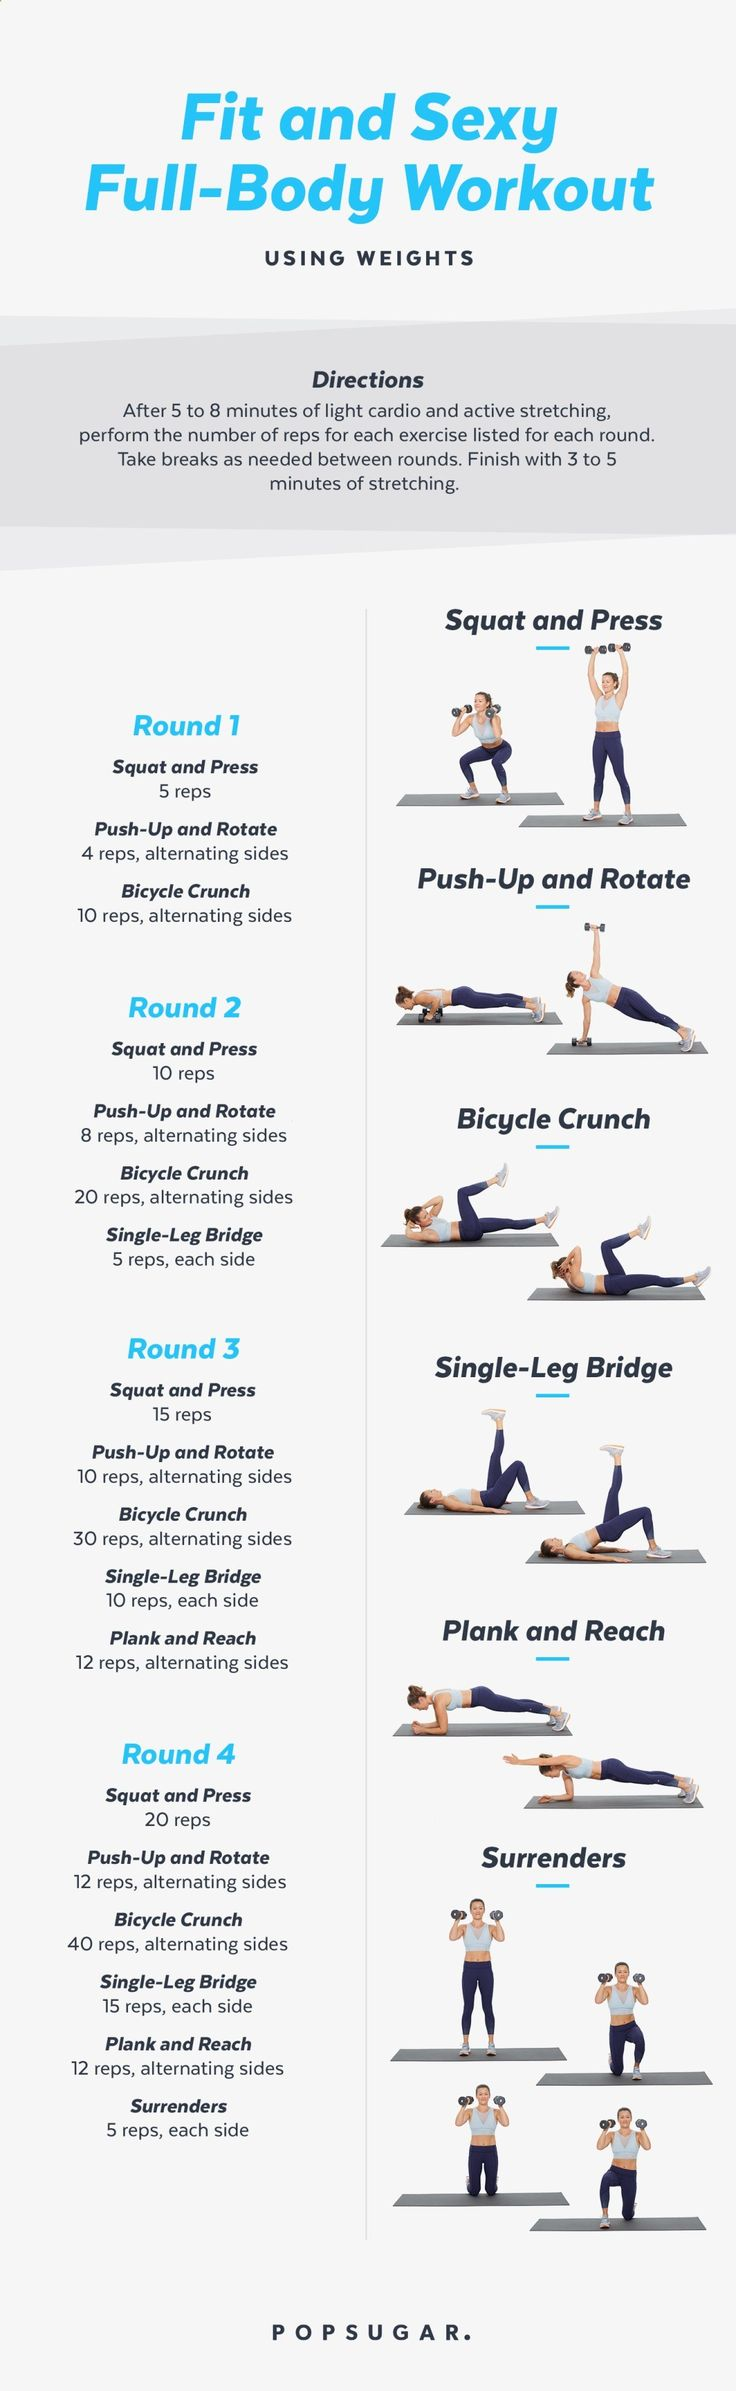 This full-body workout uses medium-weight dumbbells to build strength and muscle. We have a video too, if you want extra instruction on the moves or more motivation.